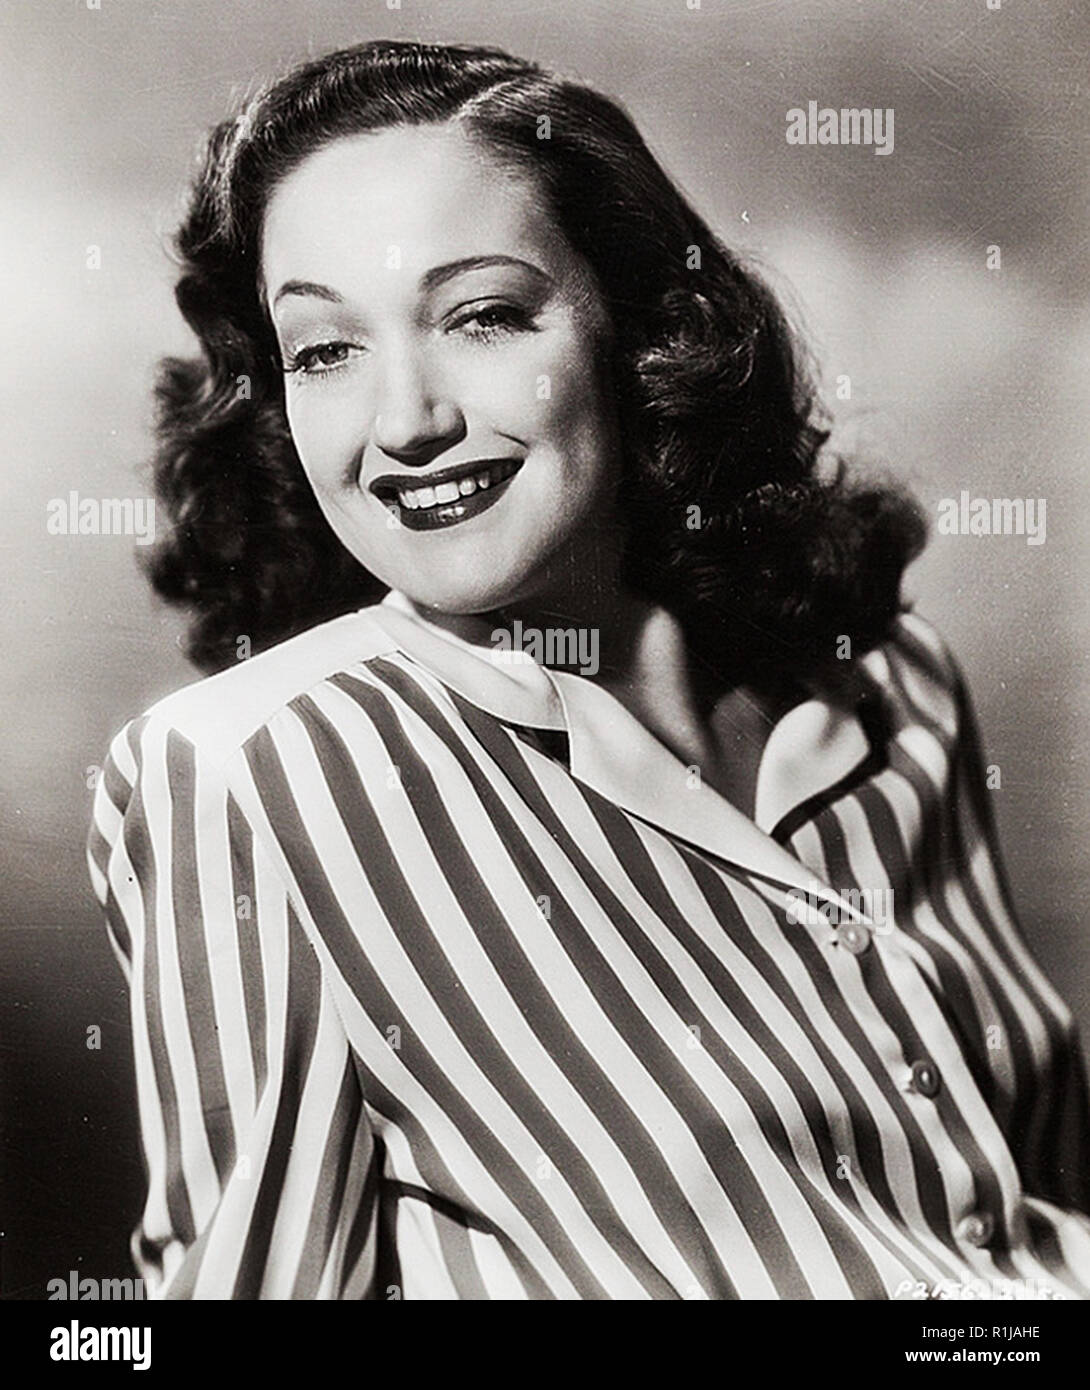 Lamour began her career in the 1930s as a big band singer